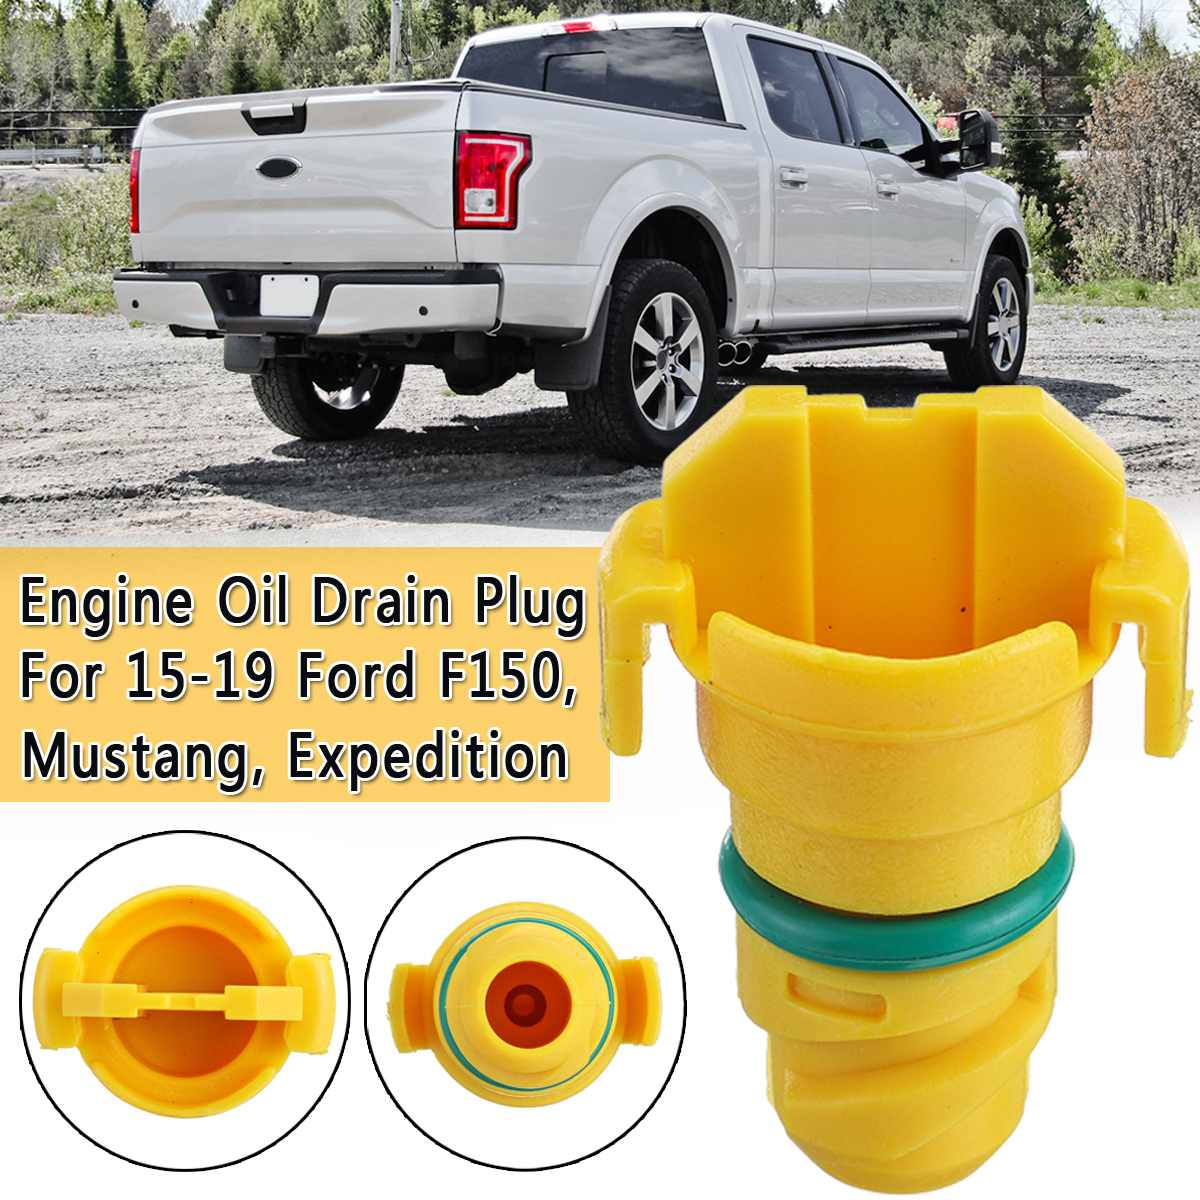 Engine Oil Drain Plug Screw Car Engine Eco-friendly Oil Pan Magnetic Anti Leak For Ford F150 for <font><b>Mustang</b></font> Expedition <font><b>2015</b></font> -<font><b>2019</b></font> image